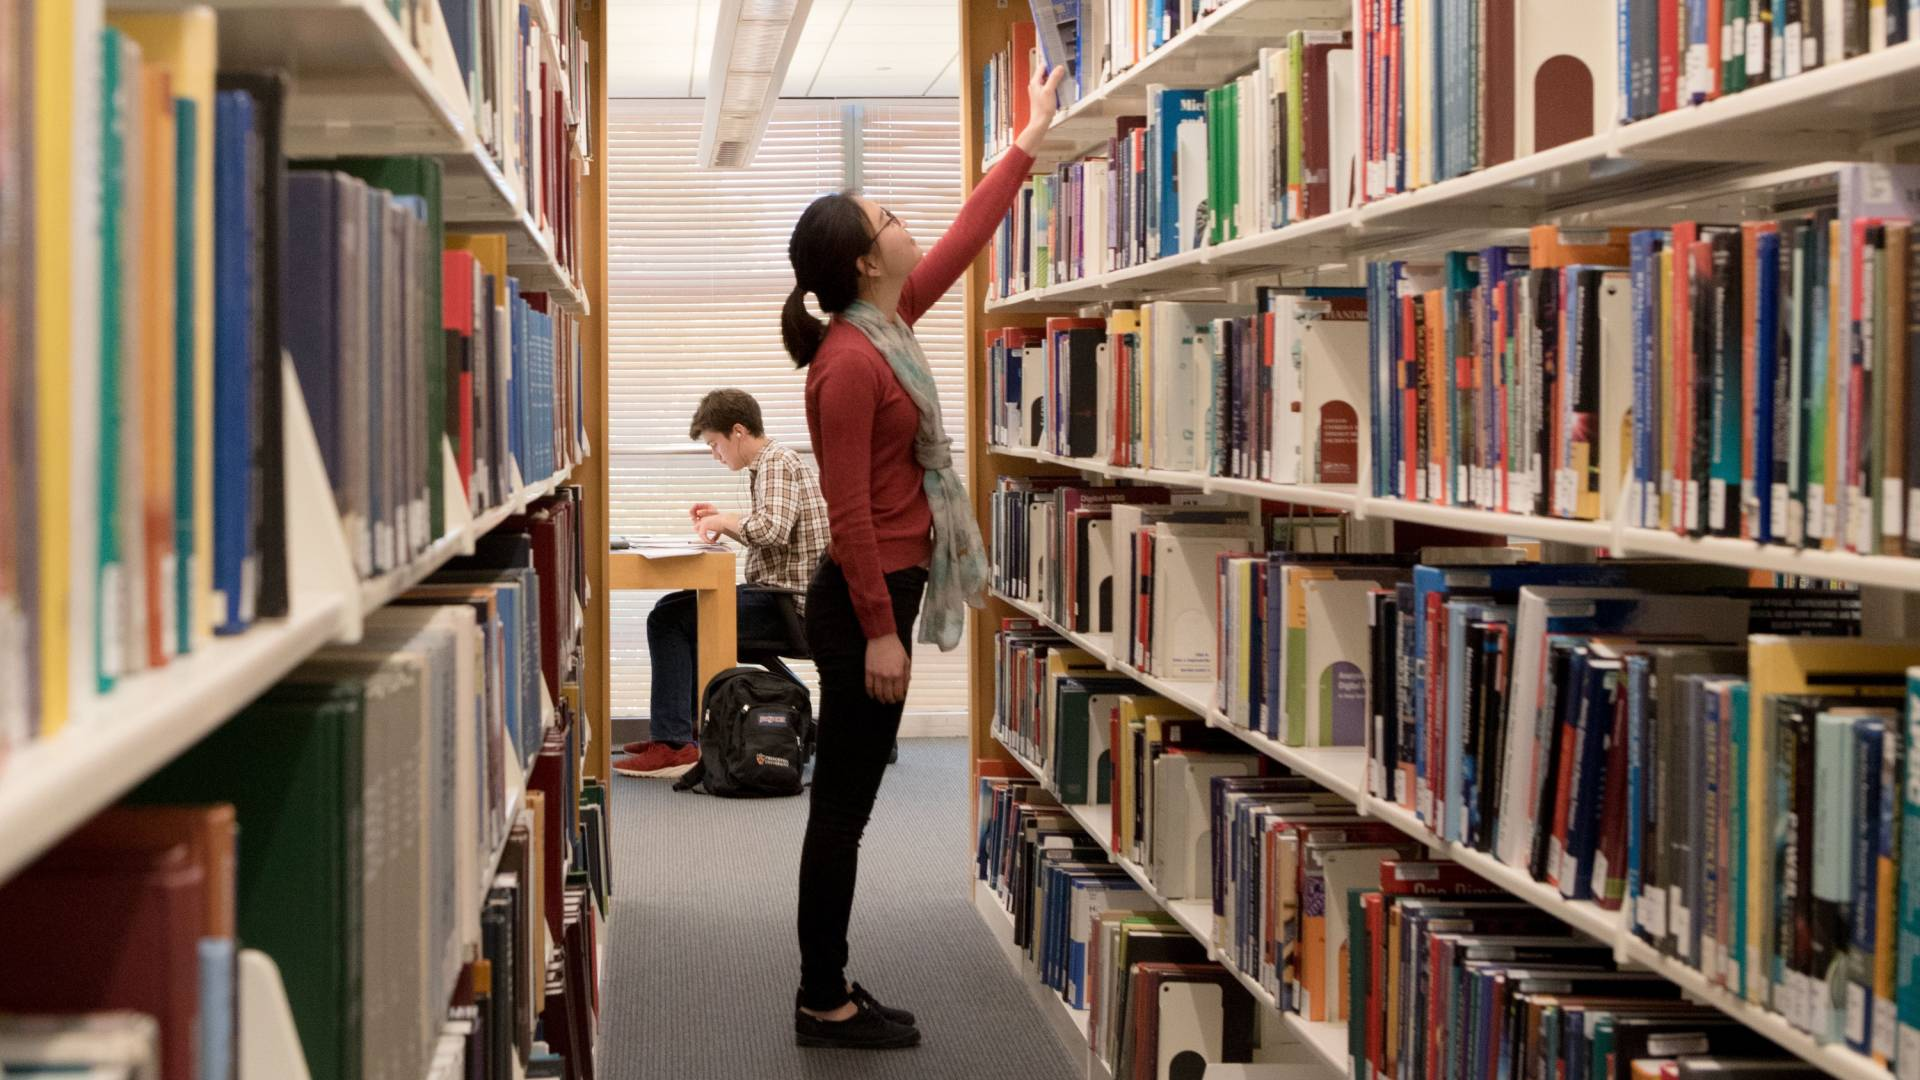 Sharing UNREST through Library Donations - #MEAction